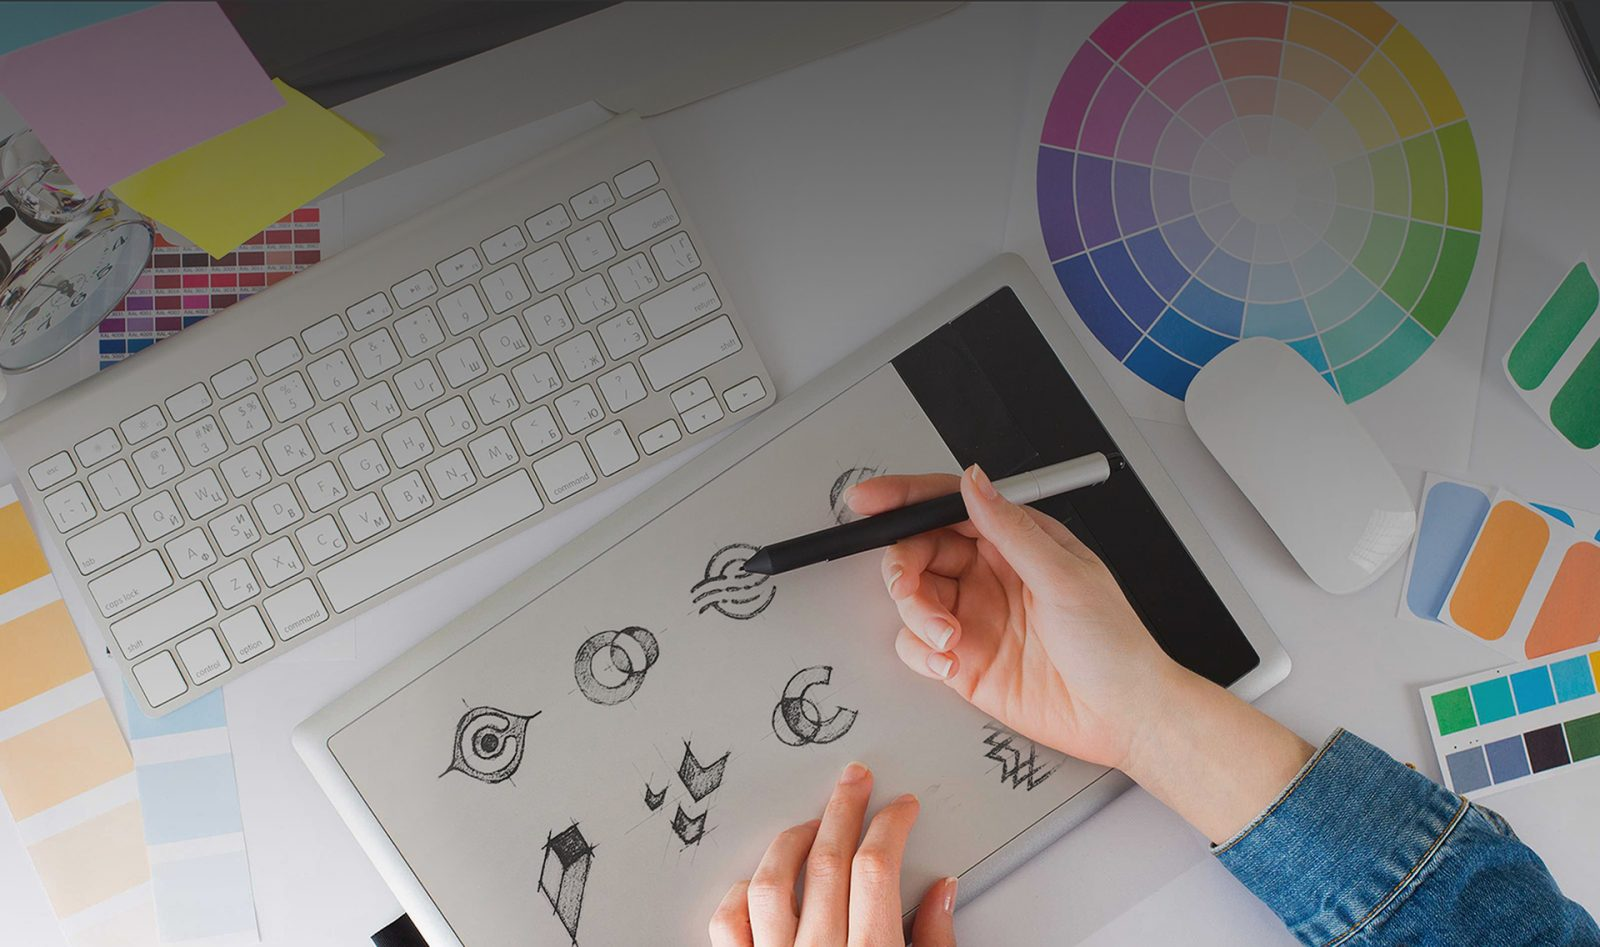 How To Design A Professional Logo To Create Brand Identity